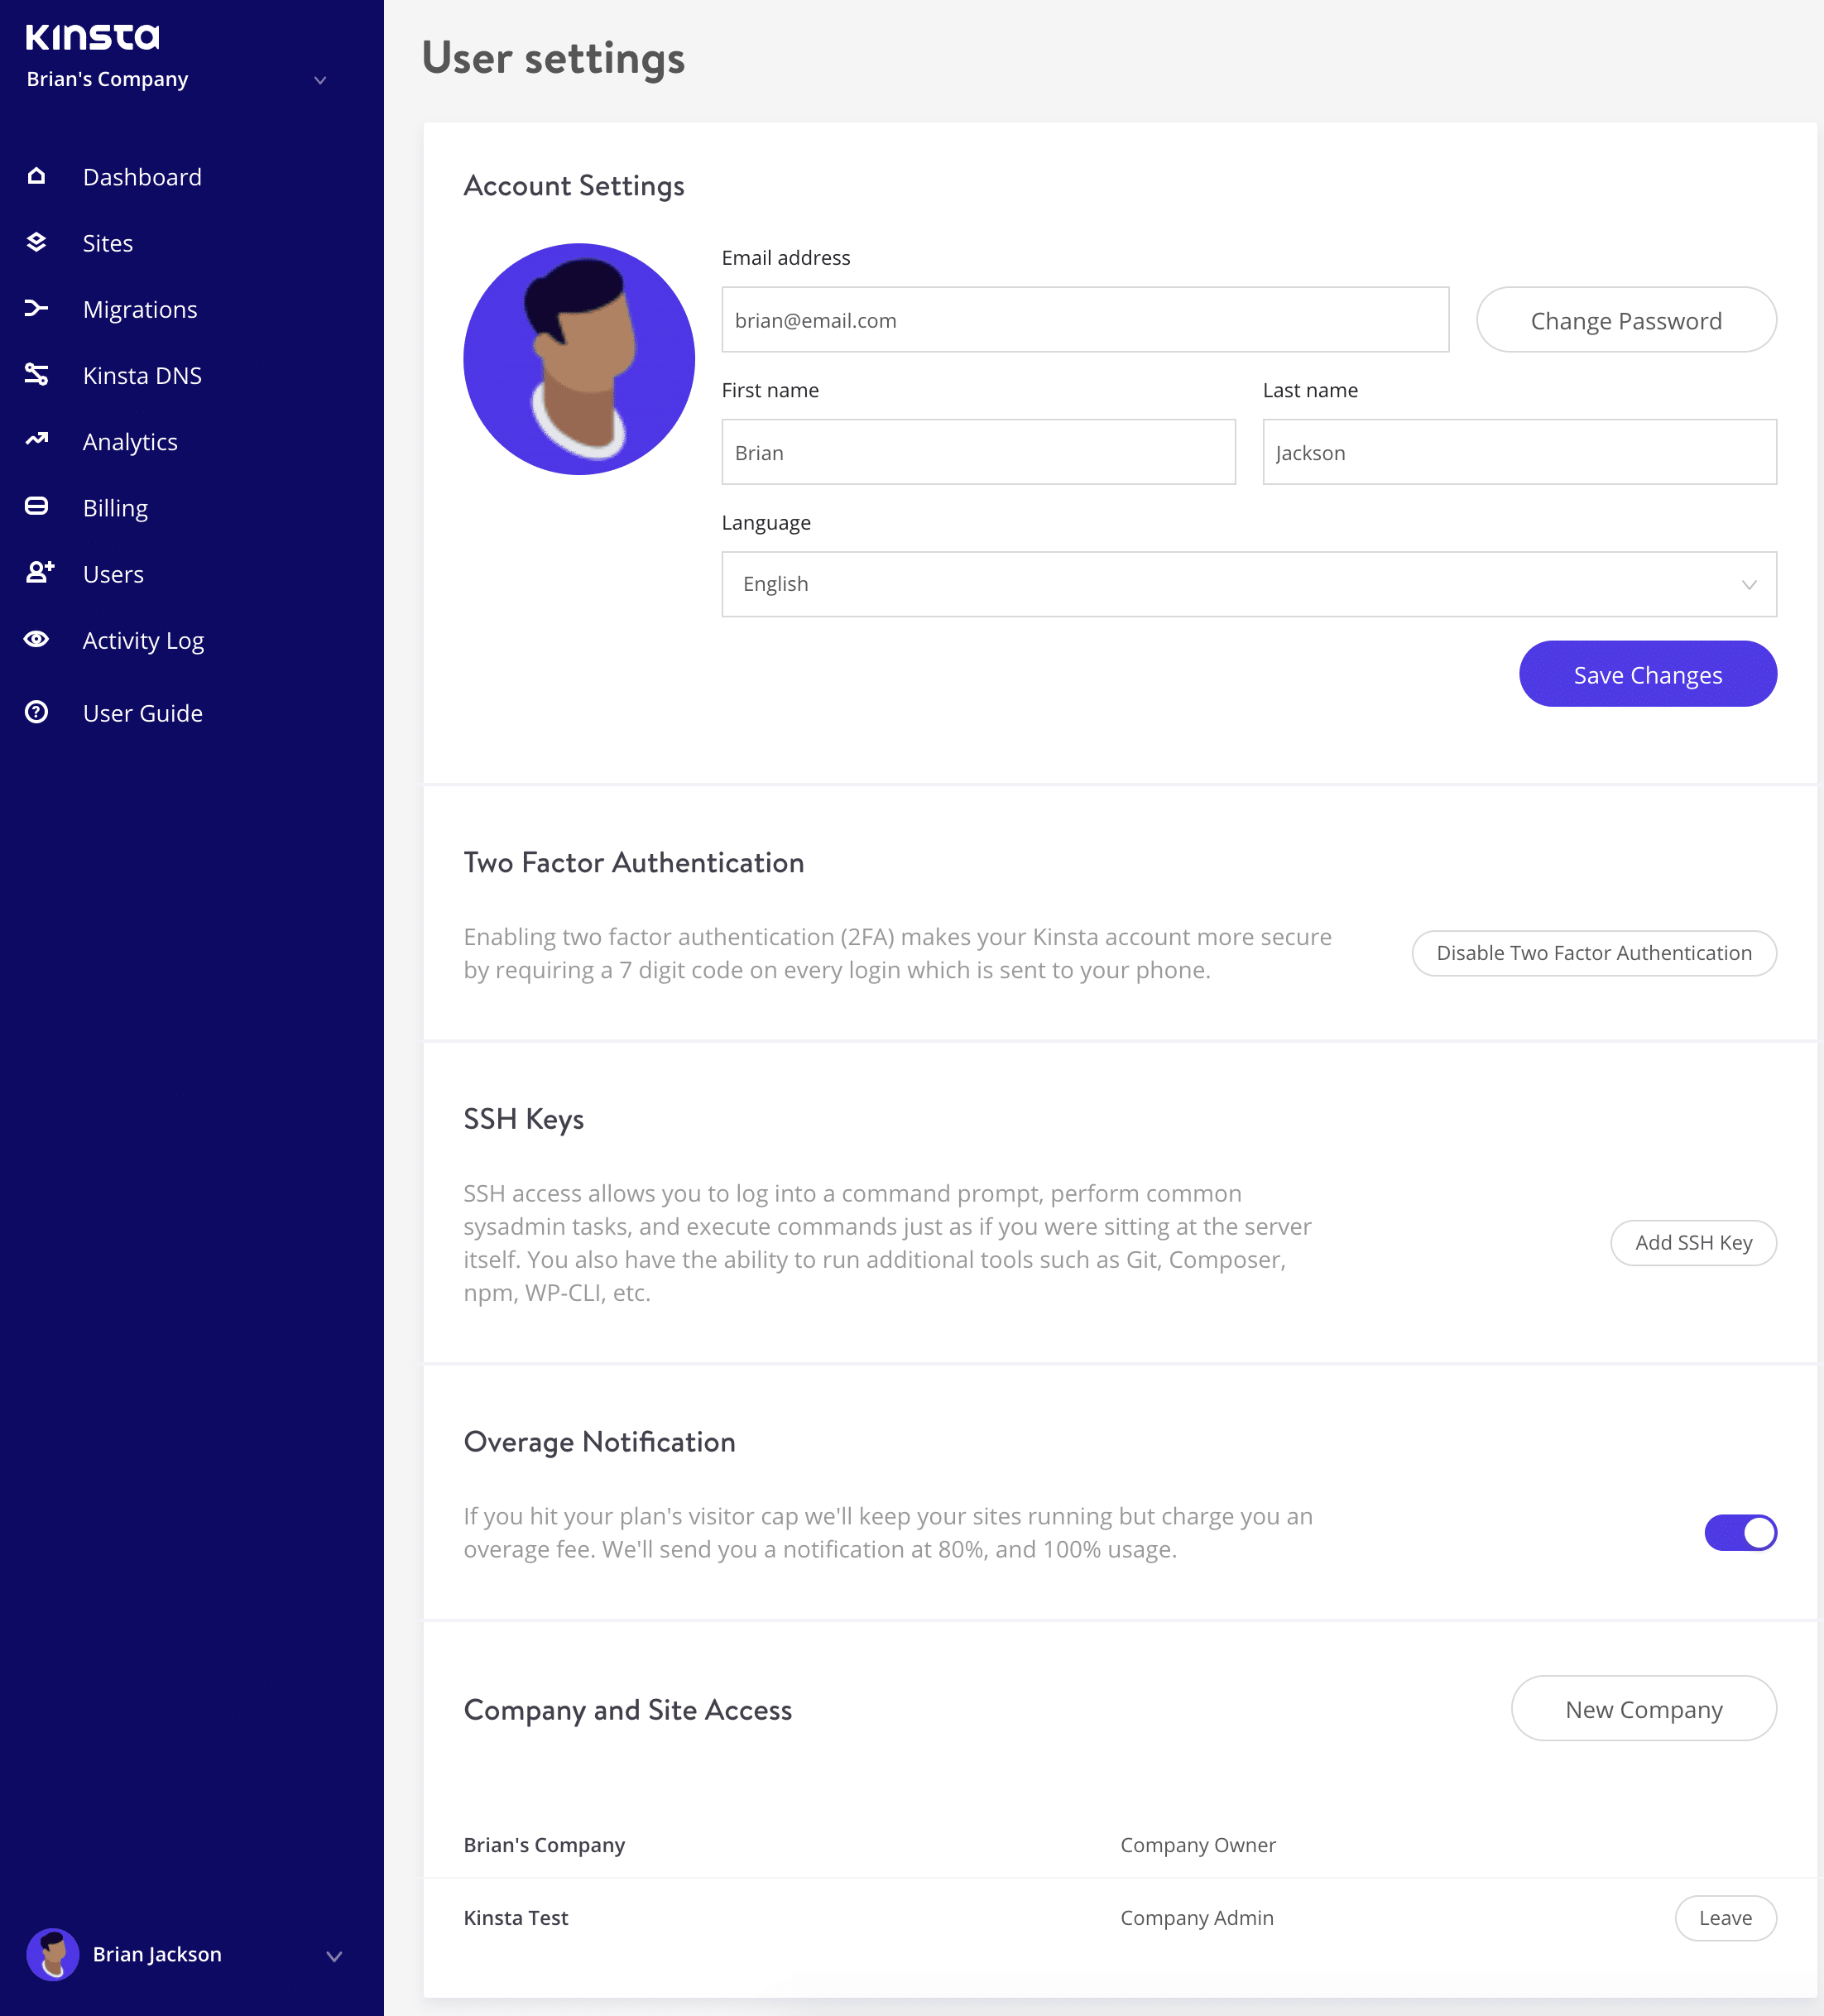 MyKinsta user settings